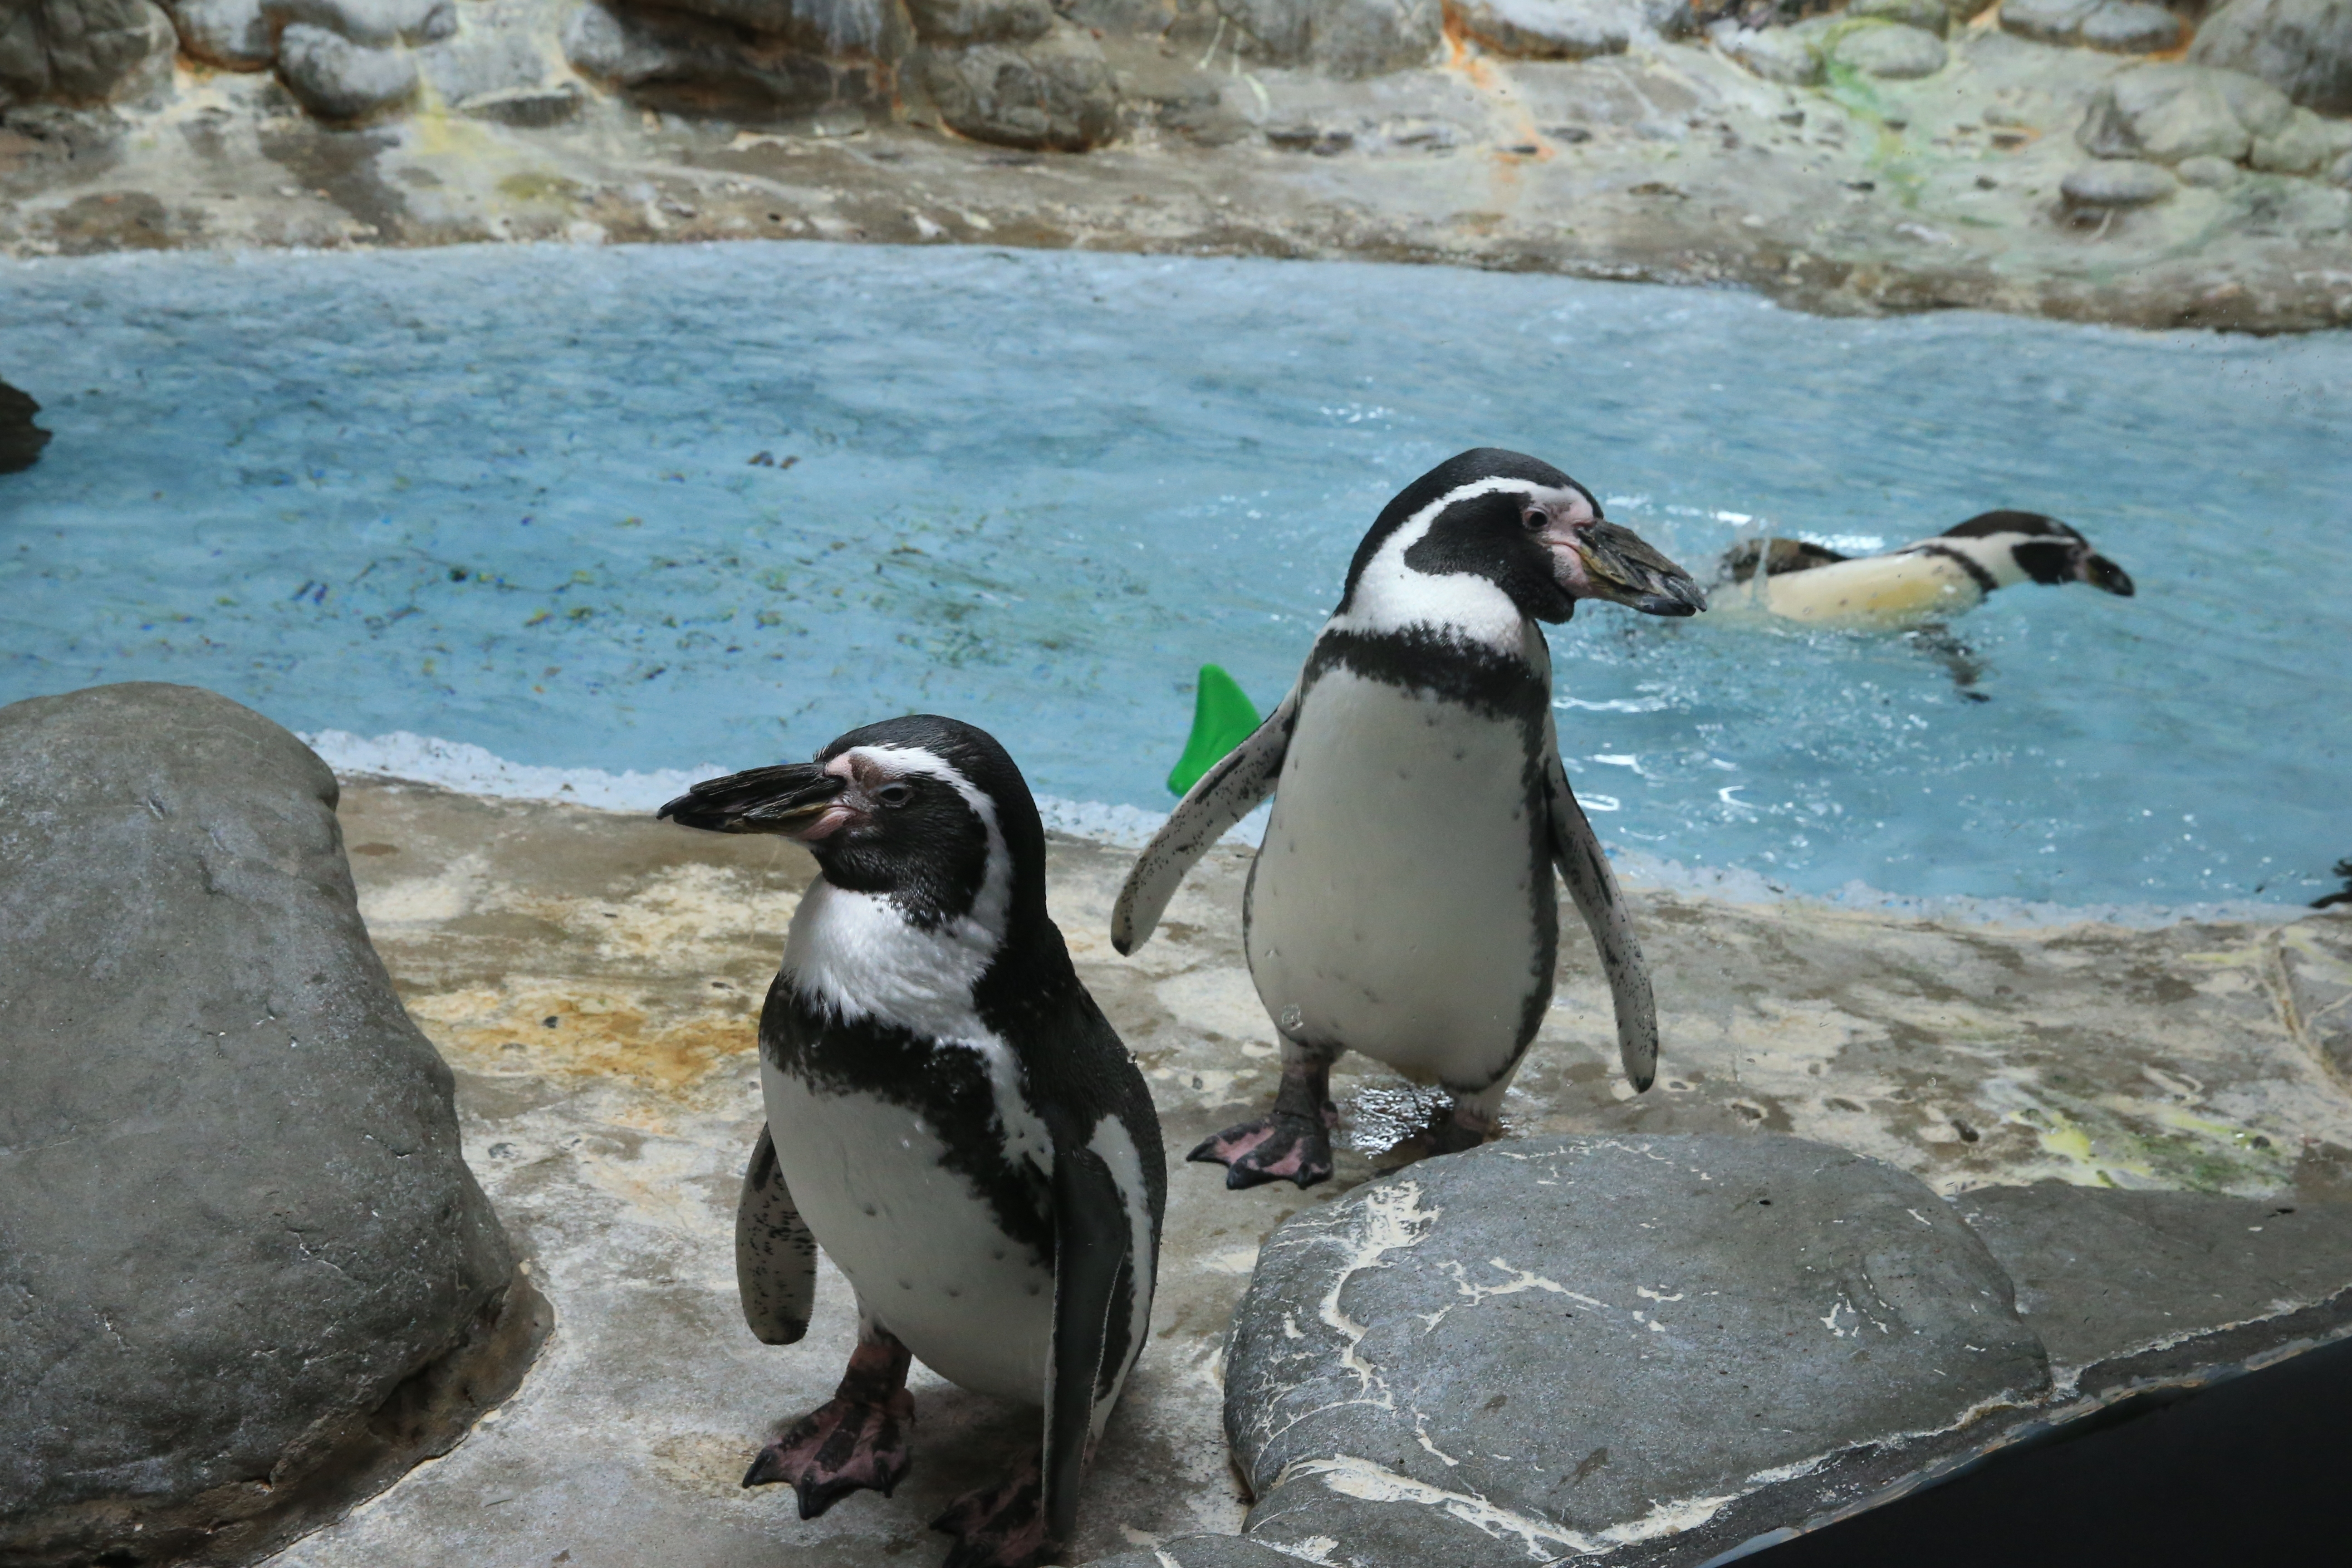 Humboldt Penguin Exihibit at the Aquarium of Niagara in Niagara Falls, N.Y. on Wednesday Sept. 28, 2016, where they are raising money for a new exhibit and classroom that will be 4 times the size of current exhibit.   (John Hickey/Buffalo News)